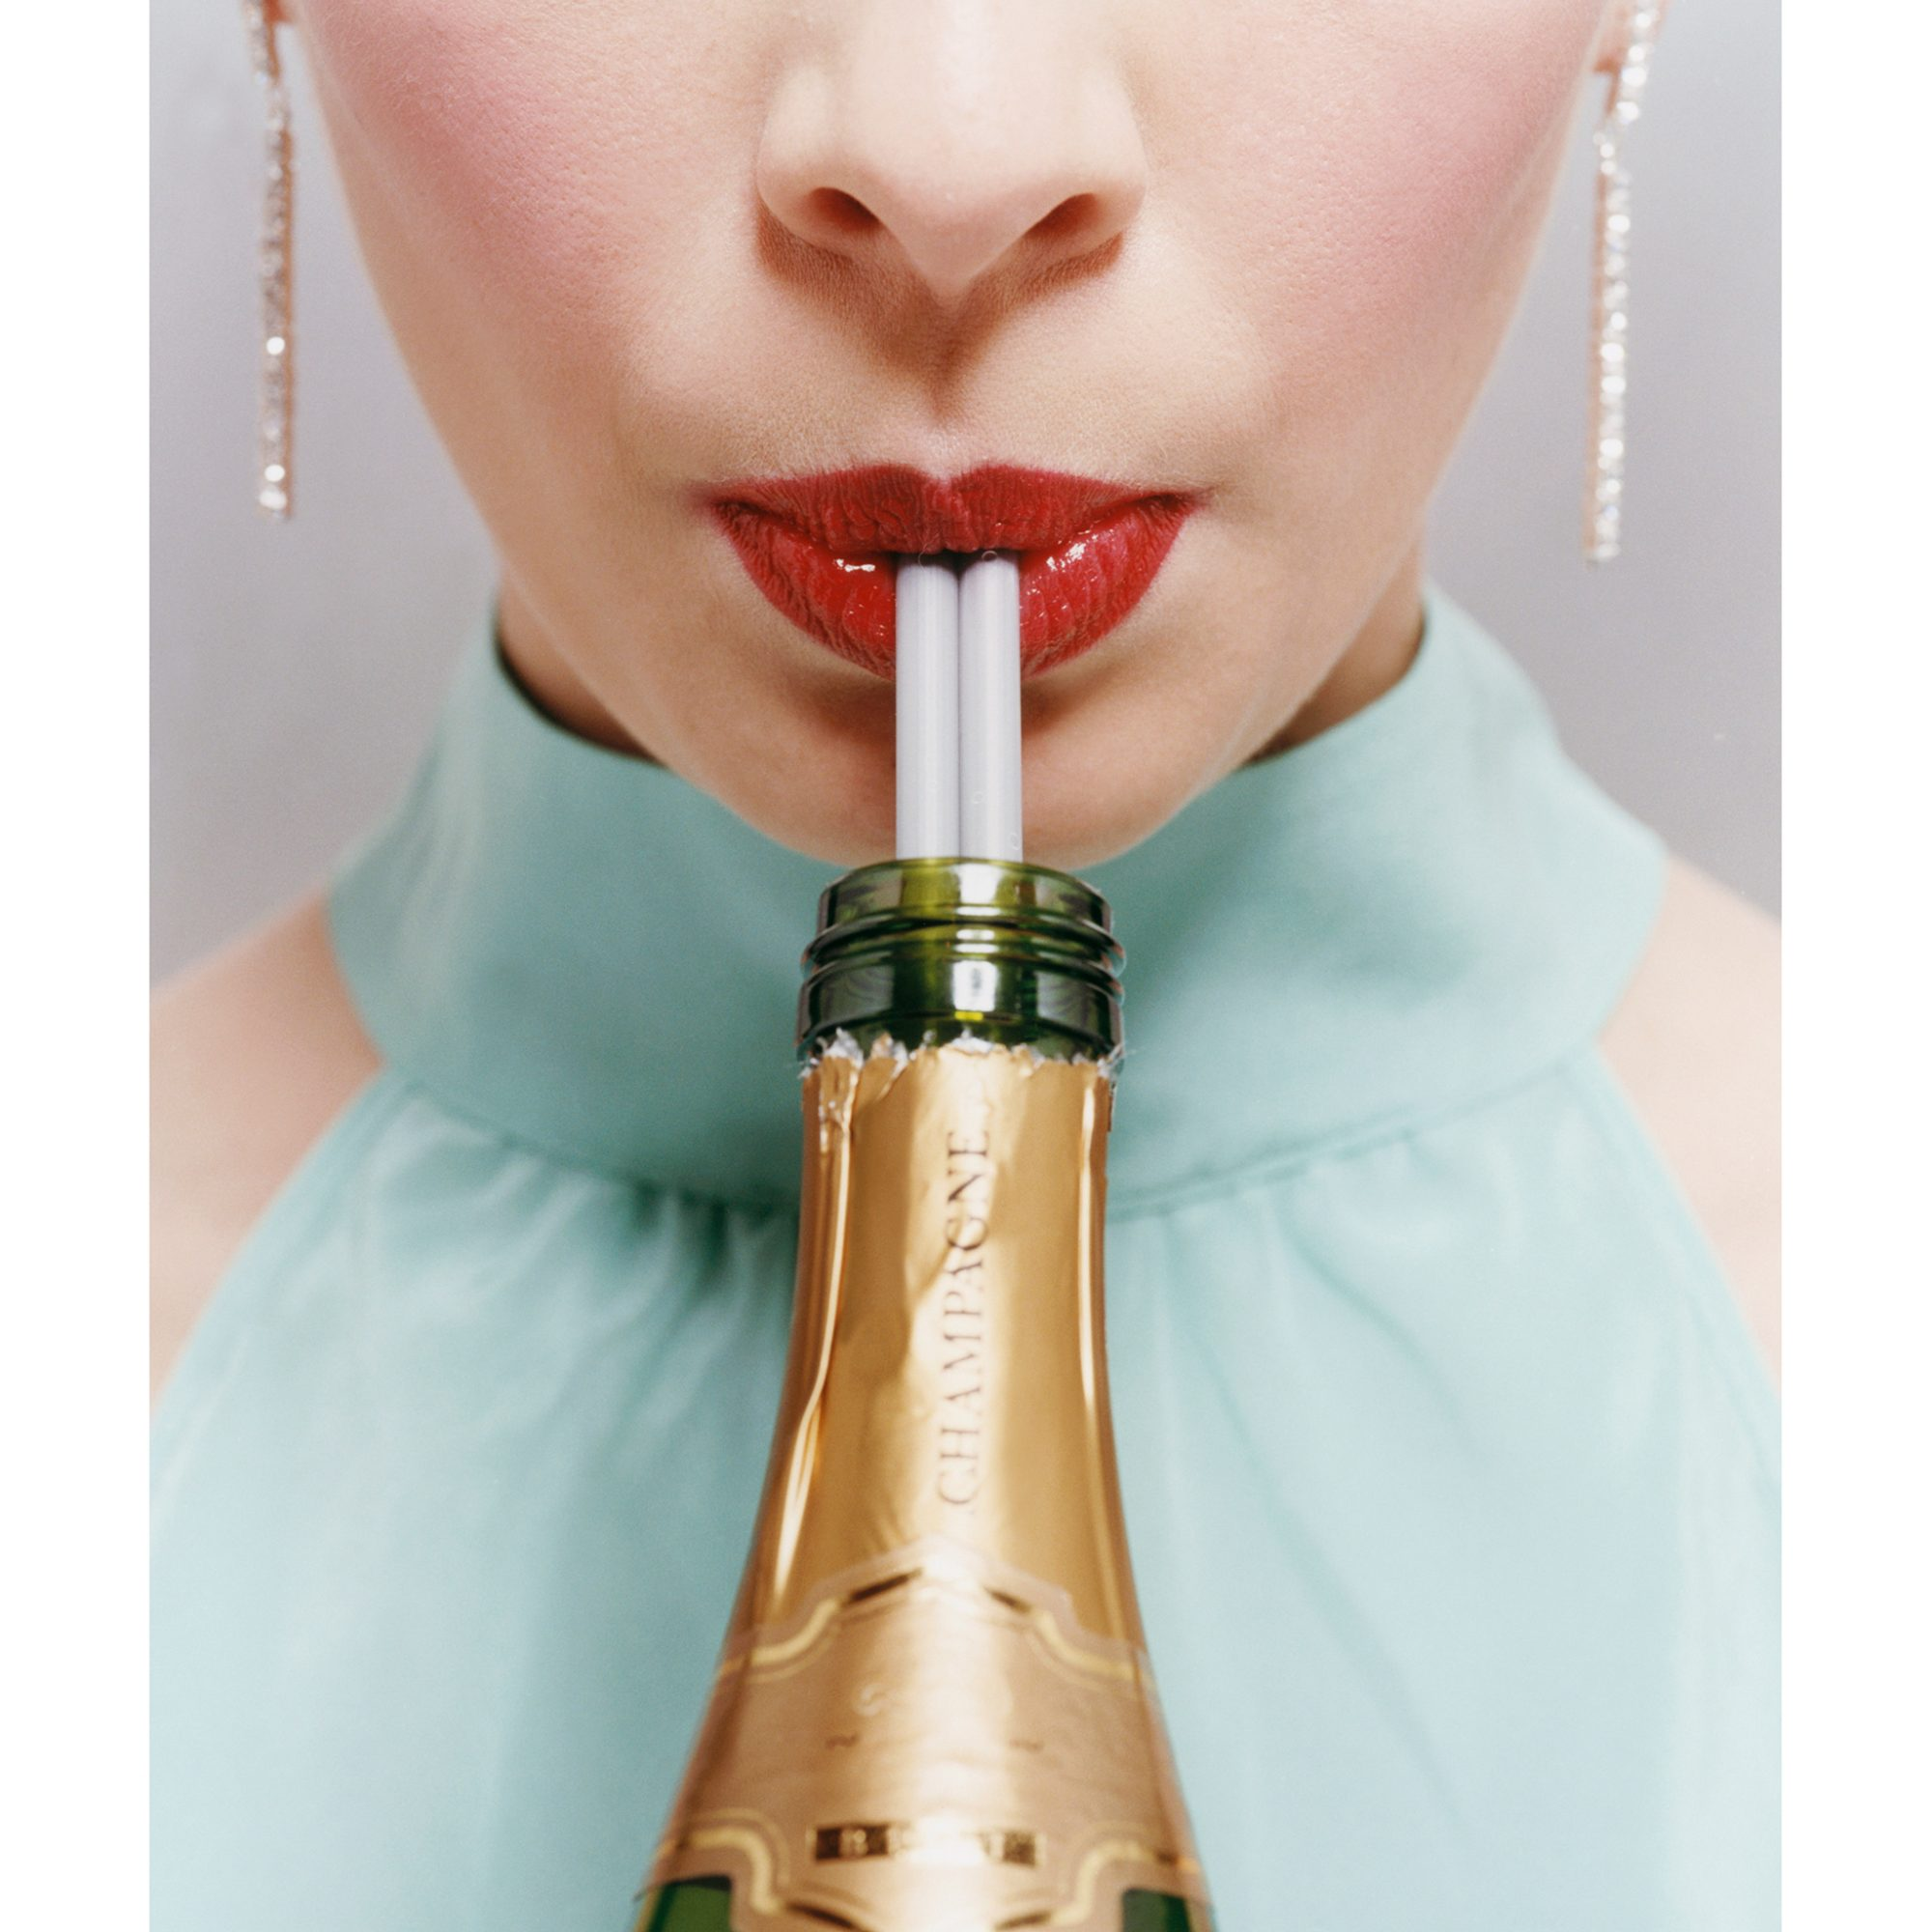 The Genius Trick for Keeping a Bottle of Champagne from Going Flat ...